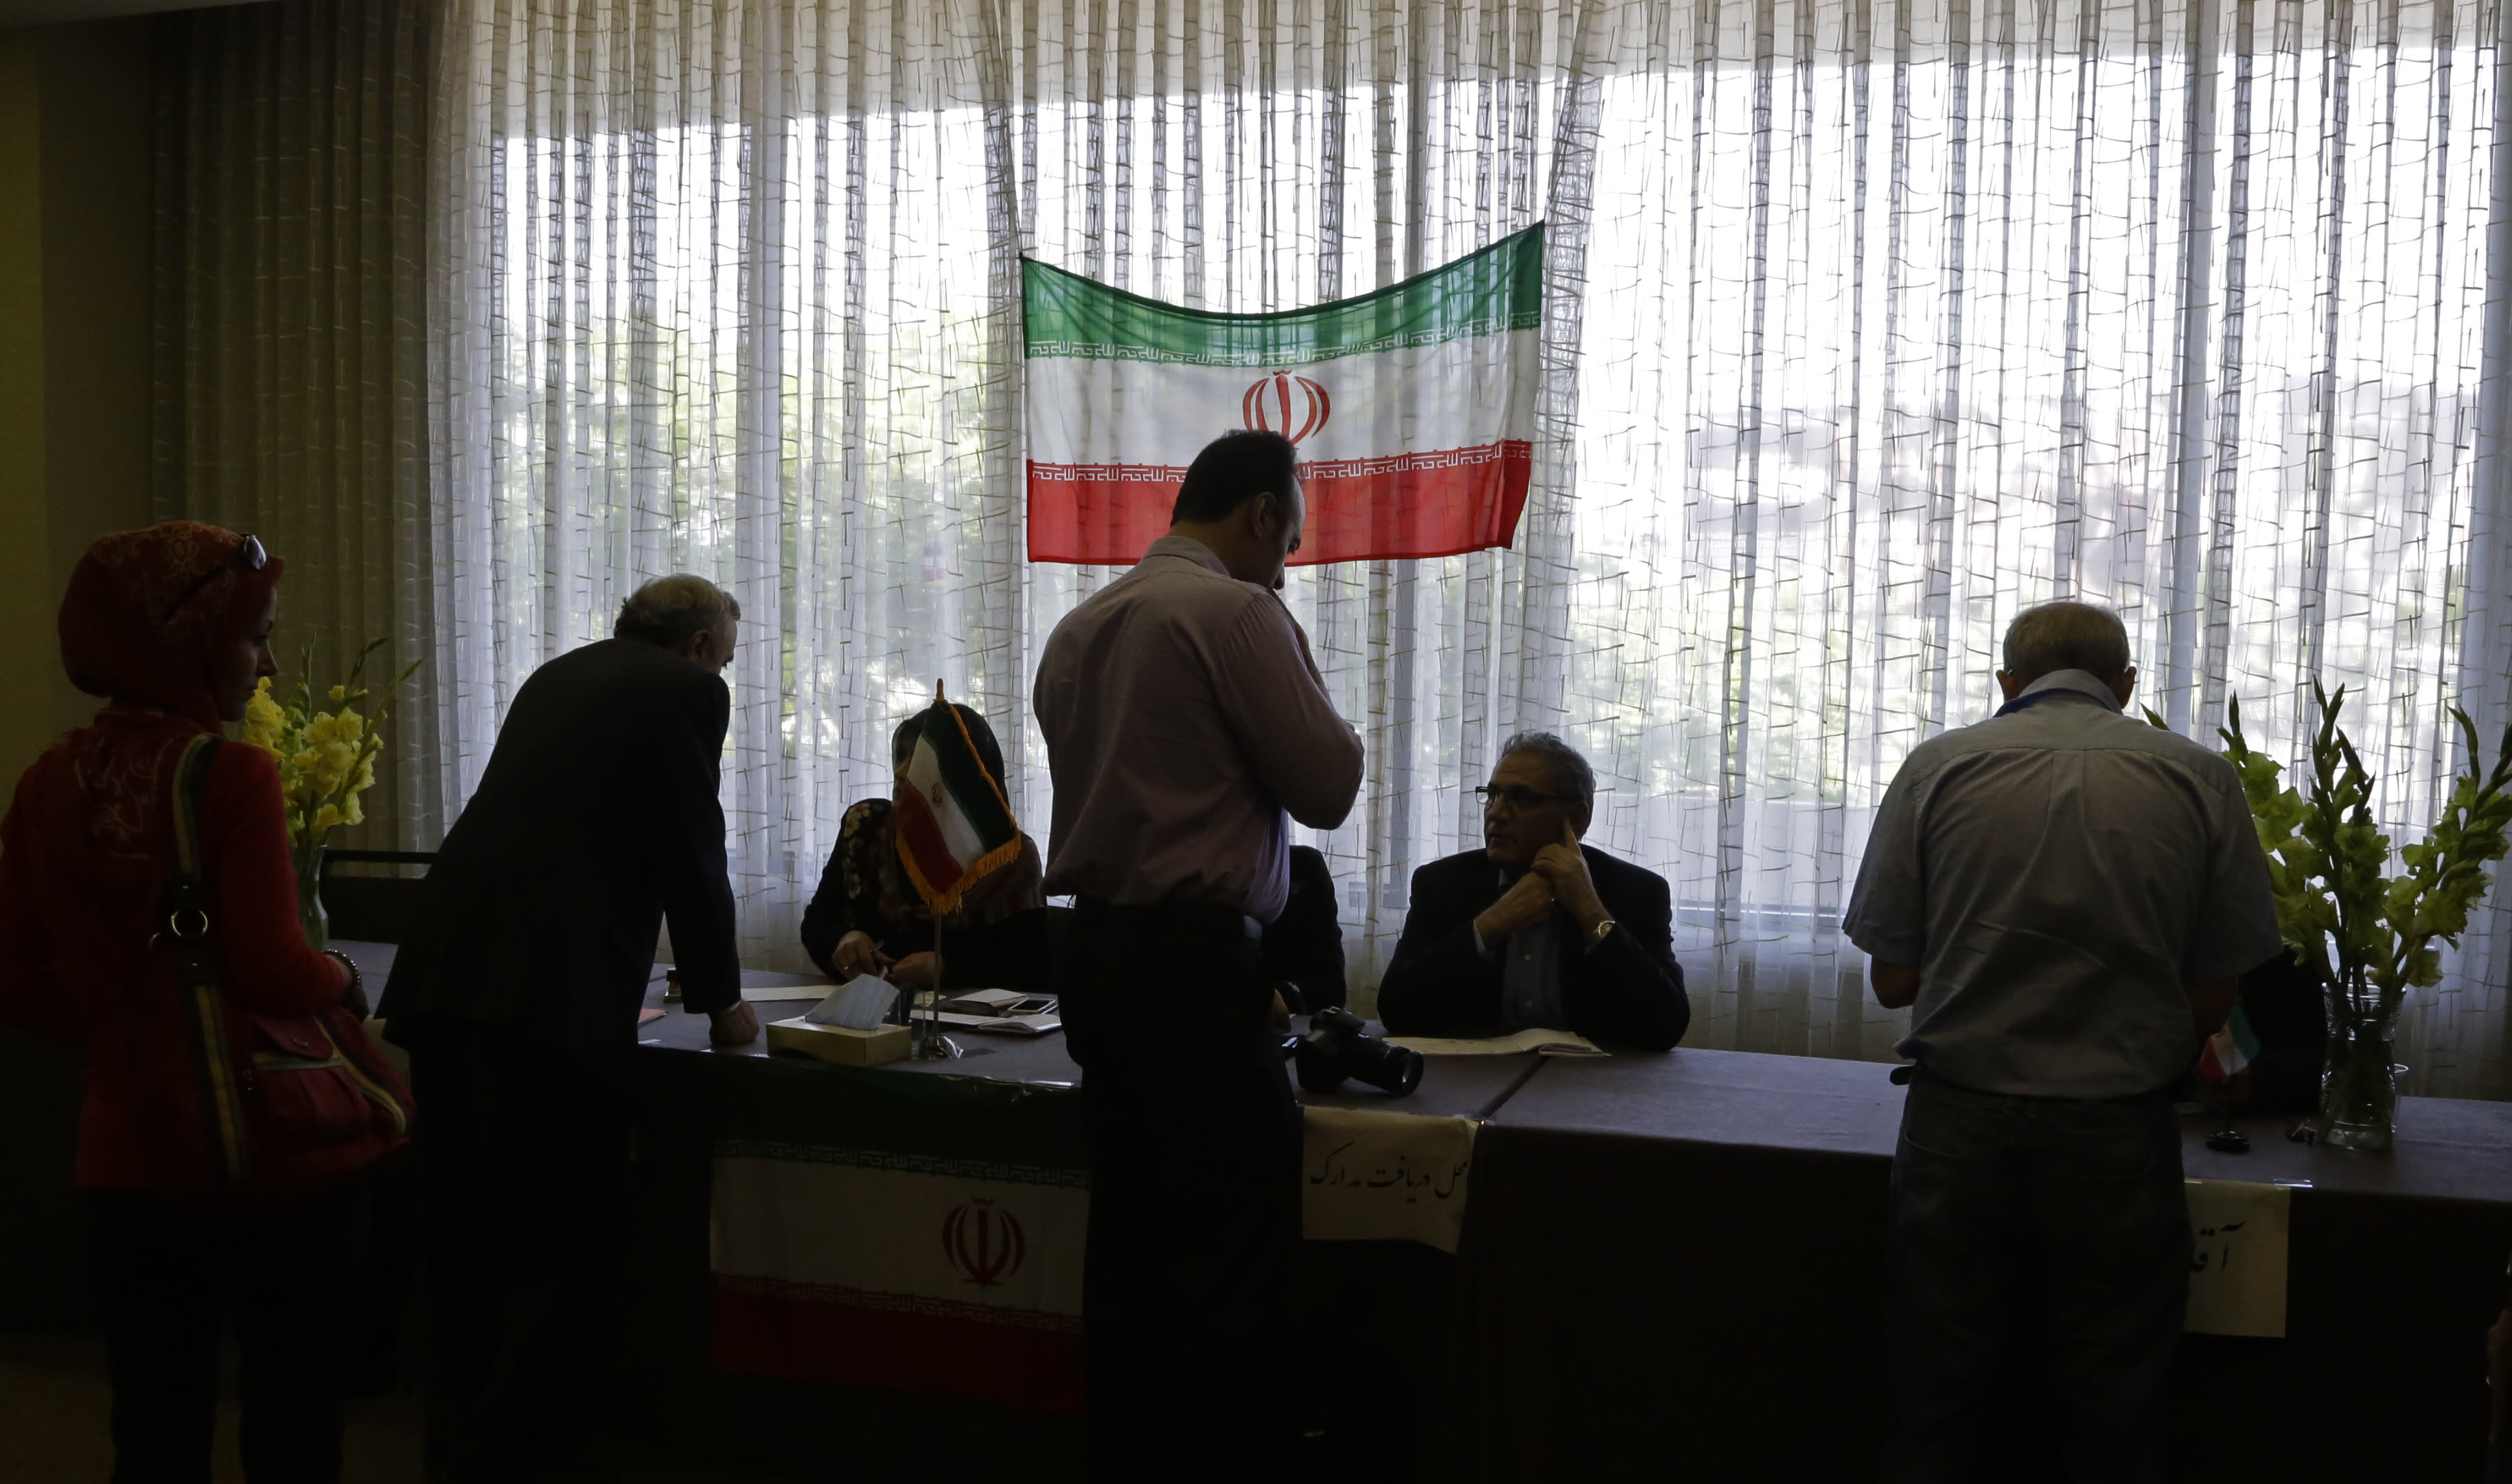 Iranians outside their country of origin sign in to cast ballots in Iran's presidential election, in a hotel meeting room in Los Angeles Friday, June 14, 2013. Iranian-Americans and expatriates cast ballots Friday in polling places across the United States, joining their countrymen half a world away in selecting the next Iranian president (AP Photo/Reed Saxon)